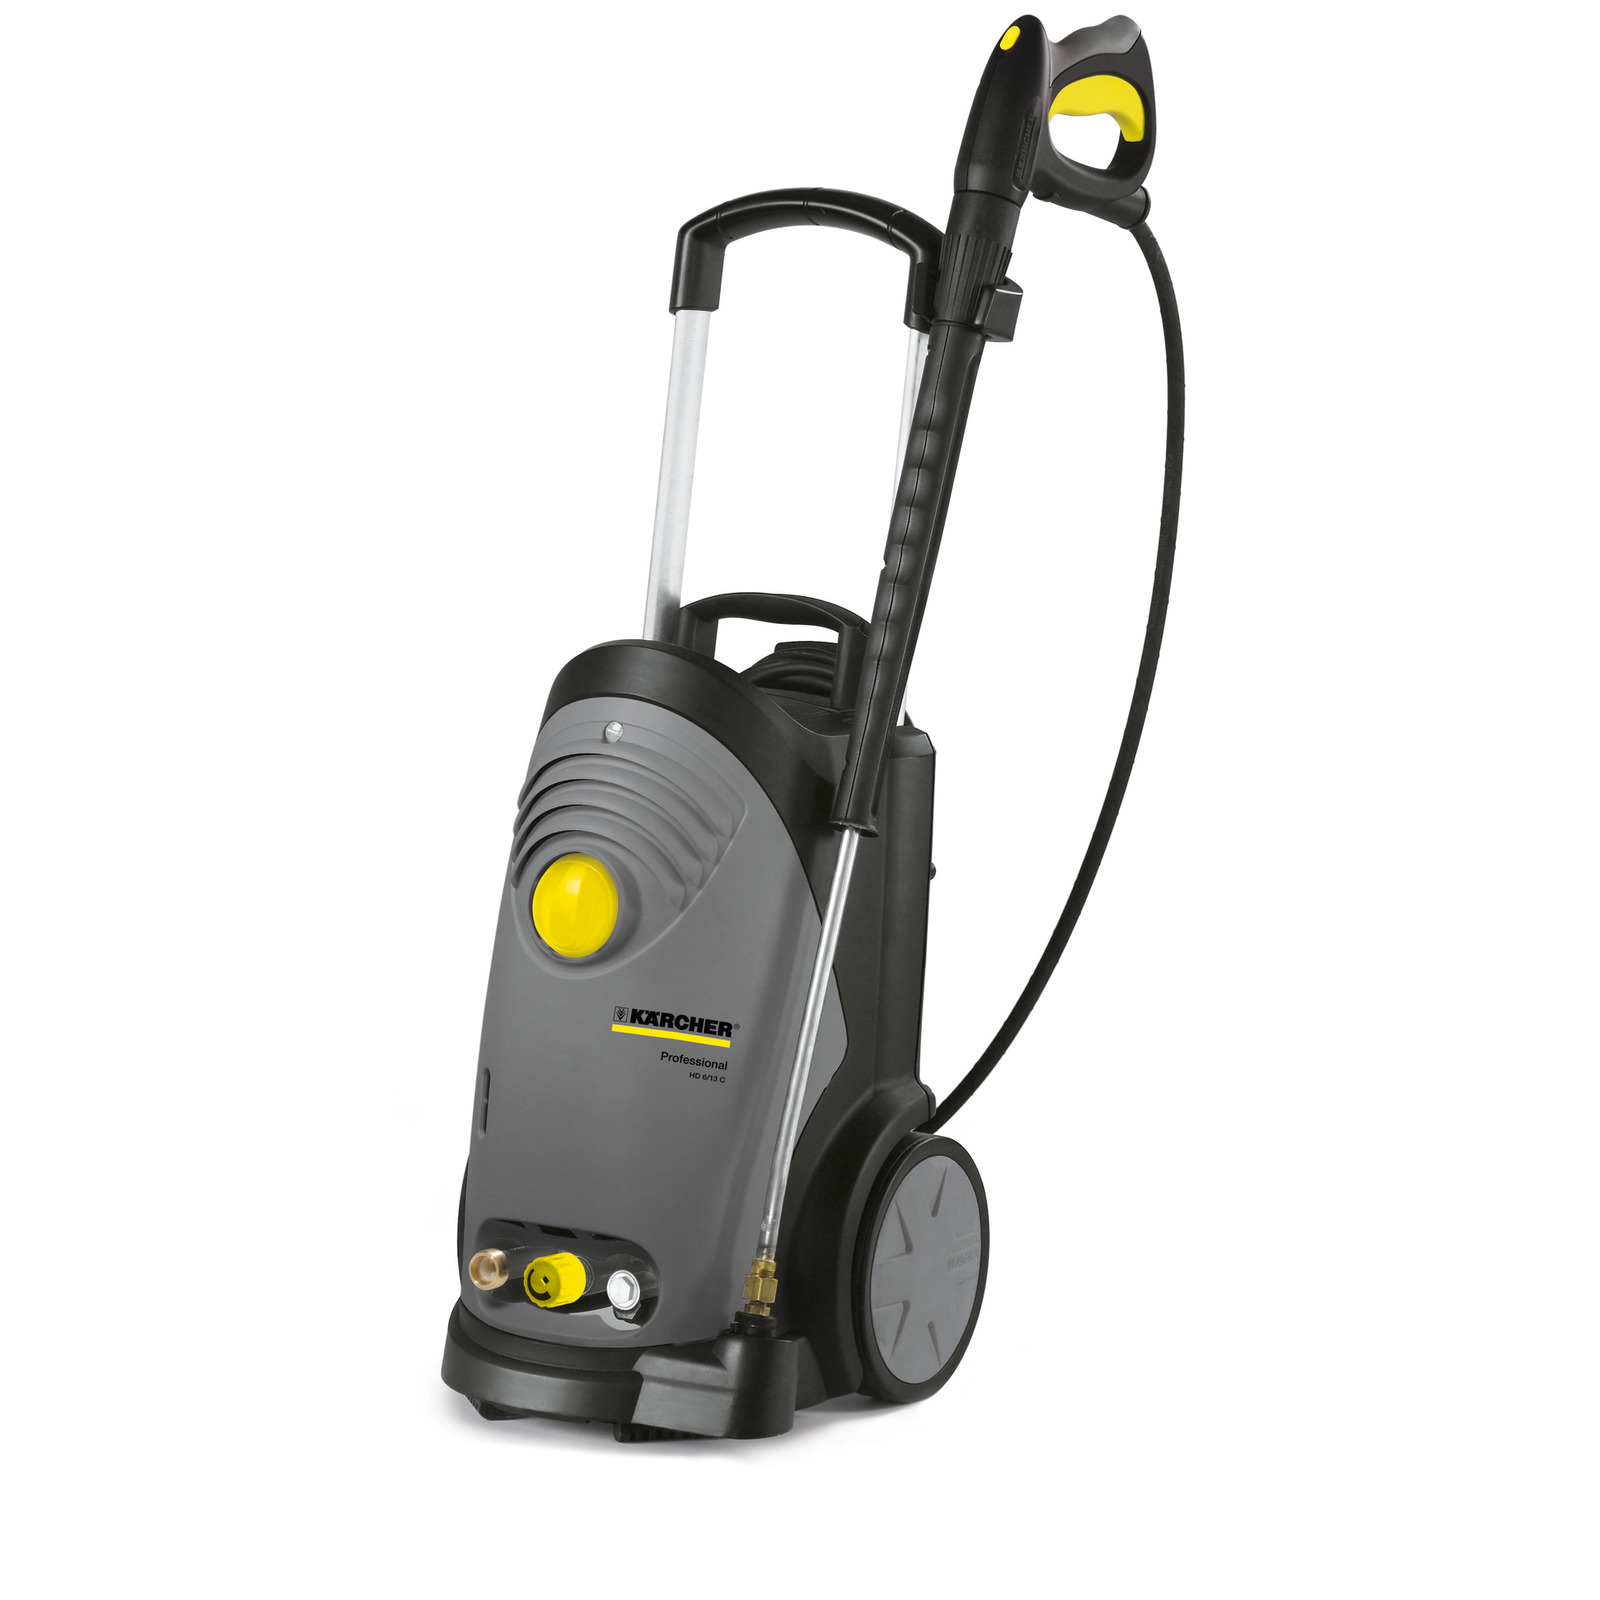 Hd 6 15 4 M Cold Water High Pressure Cleaner